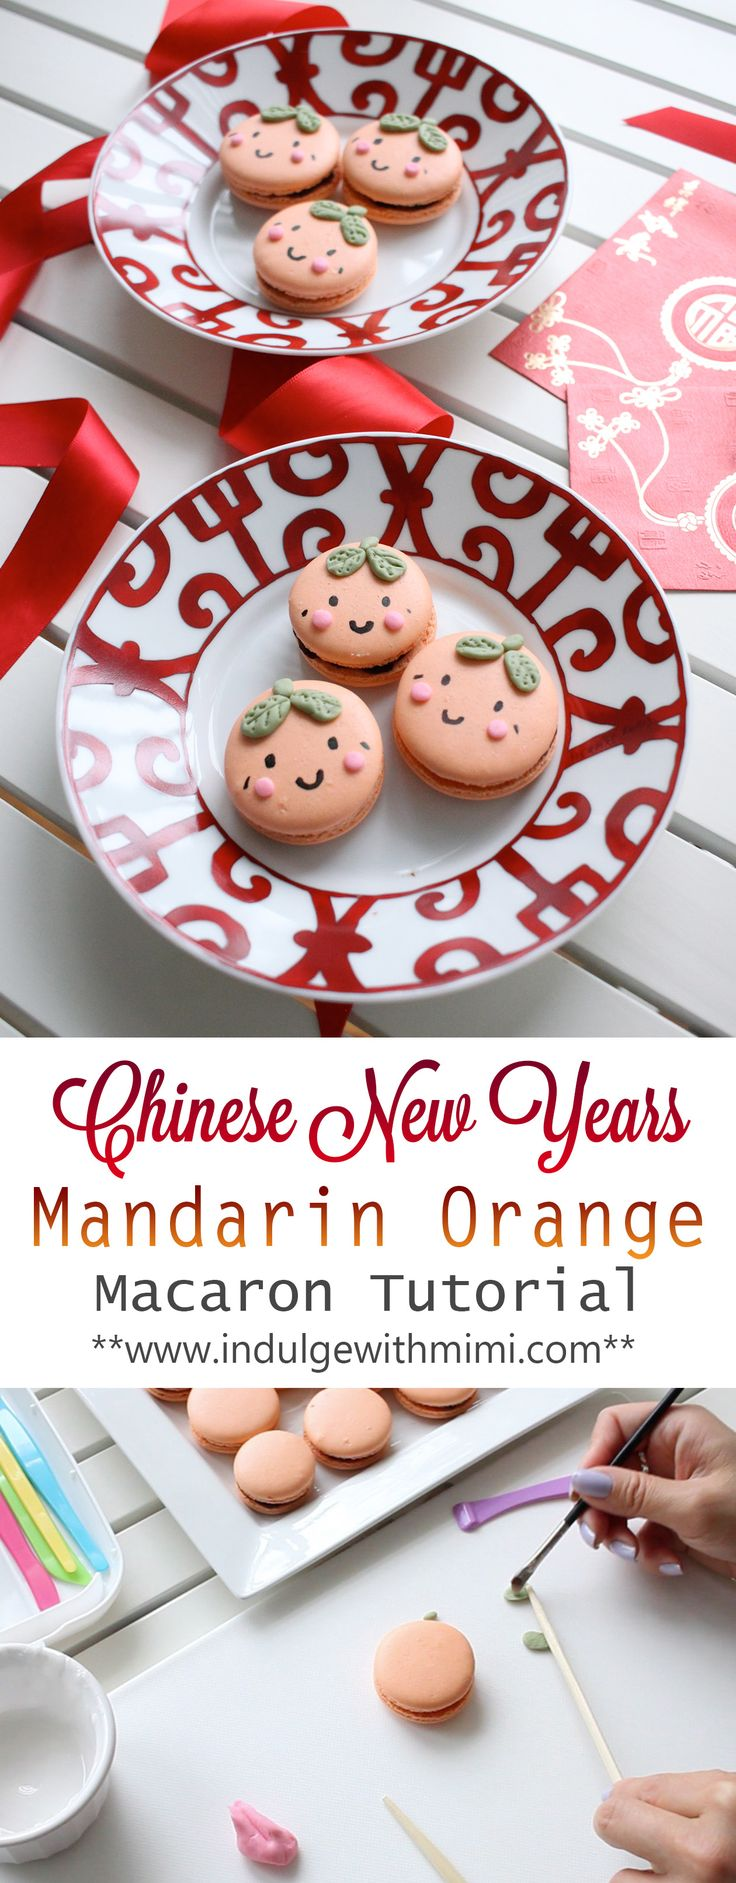 Cute Mandarin Faces Macarons filled with Orange Chocolate Ganache